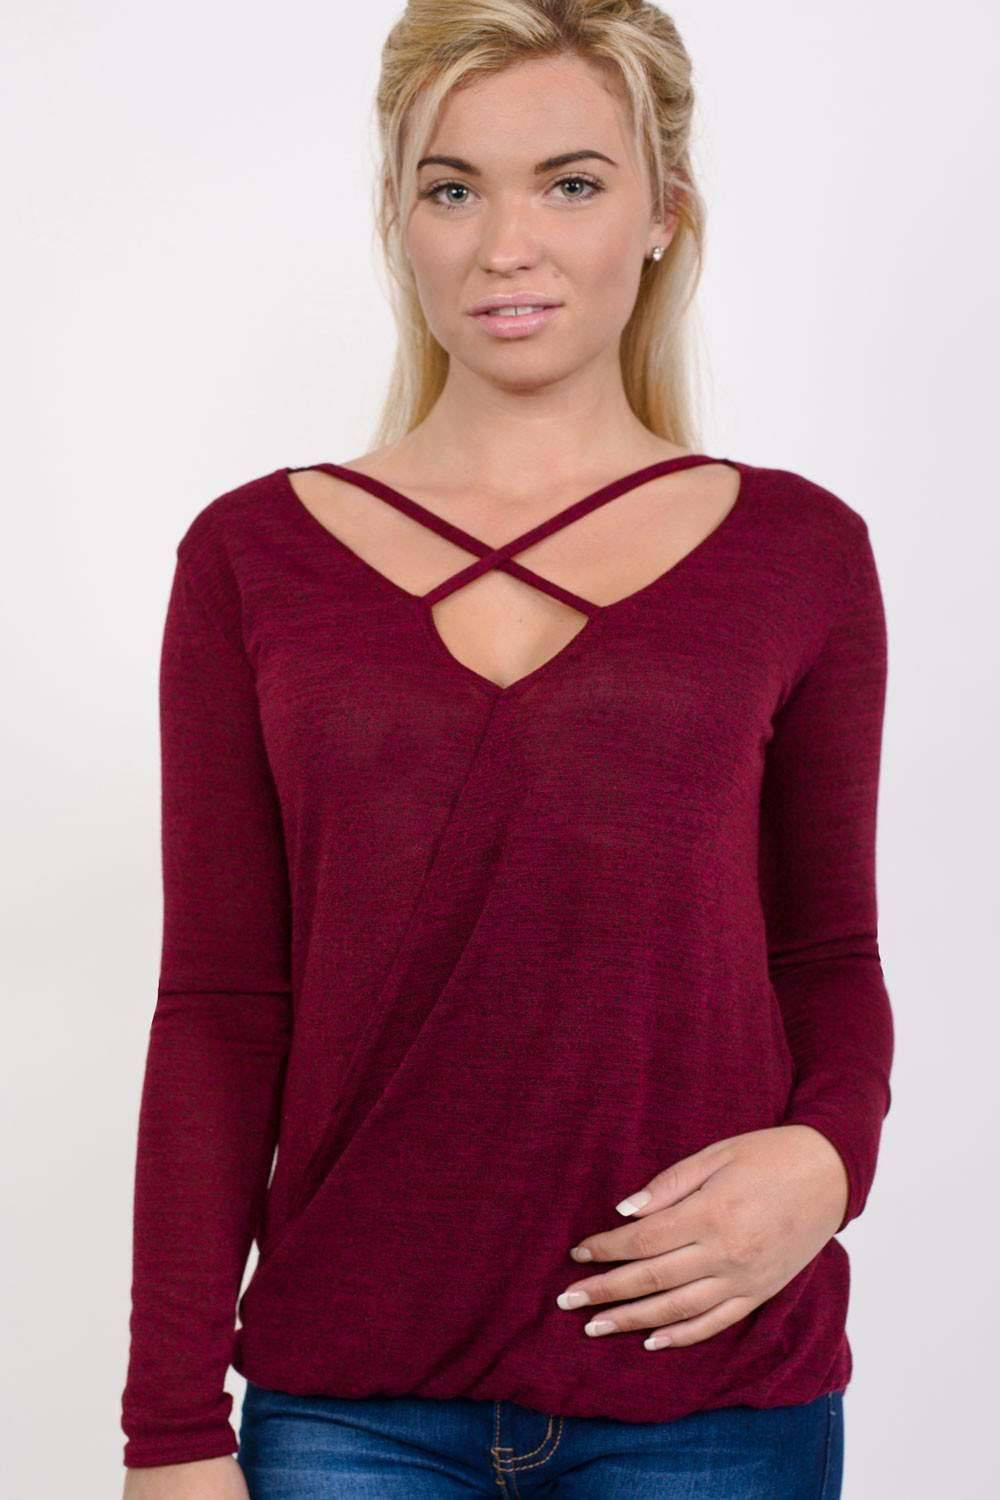 Long Sleeve Knitted Cross Strap And Wrap Over Front Top in Wine Red 0